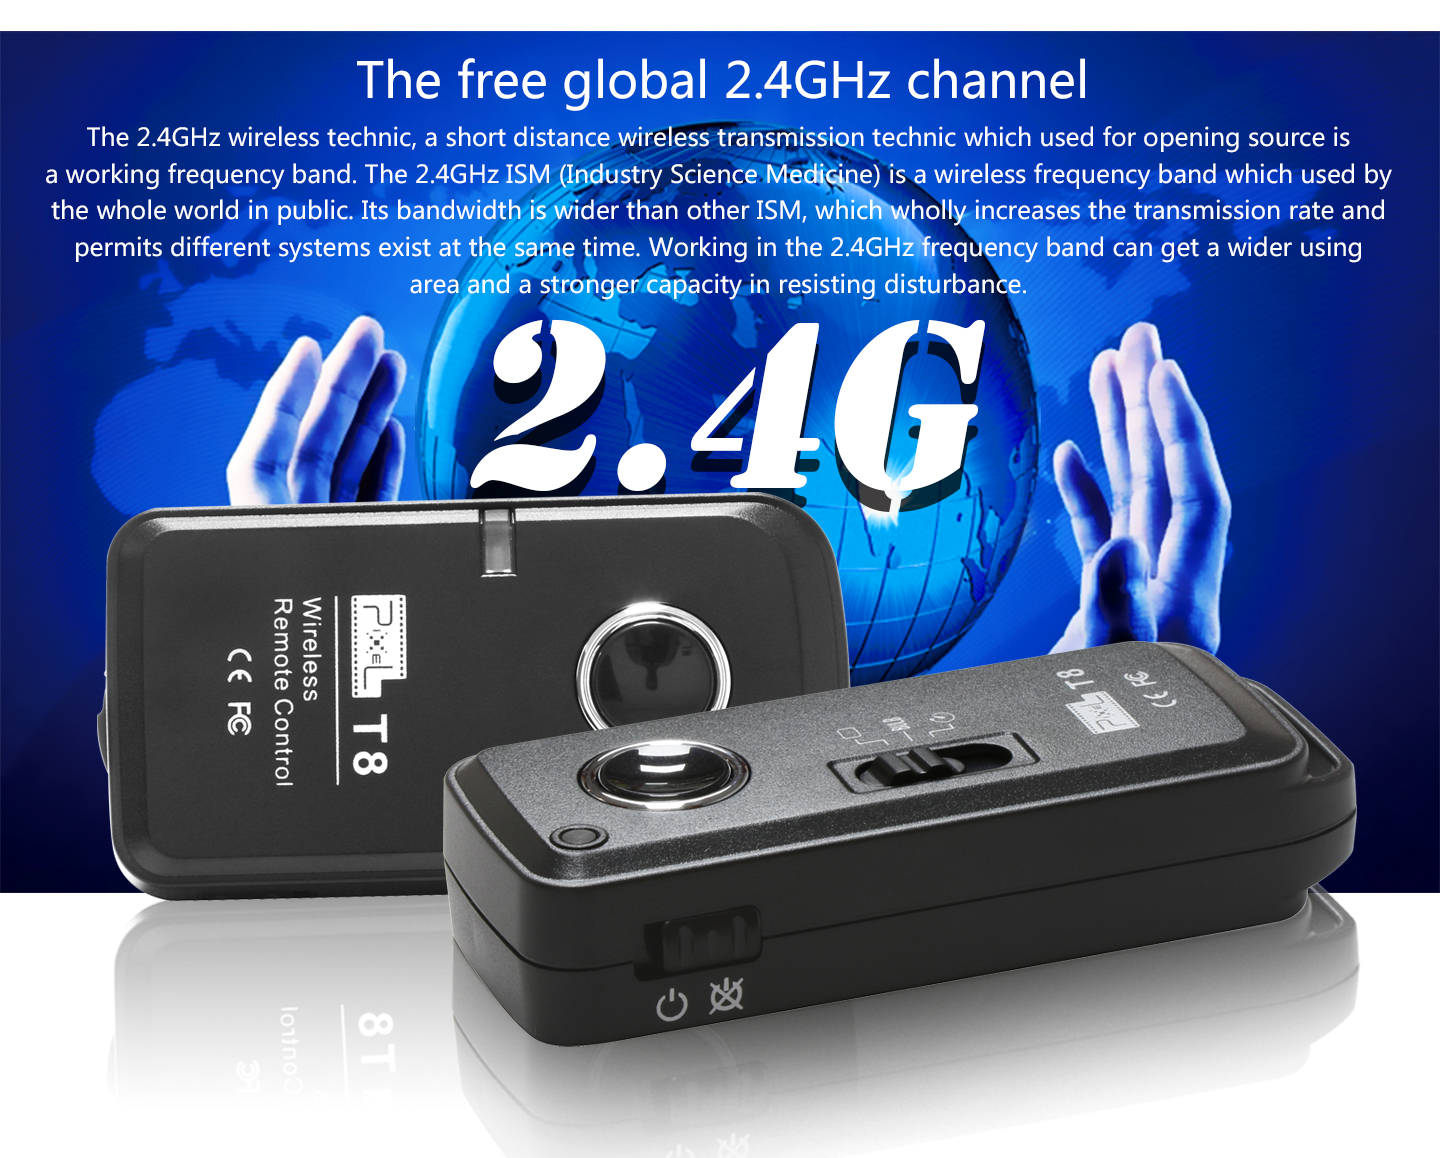 The free global 2.4GHz channel